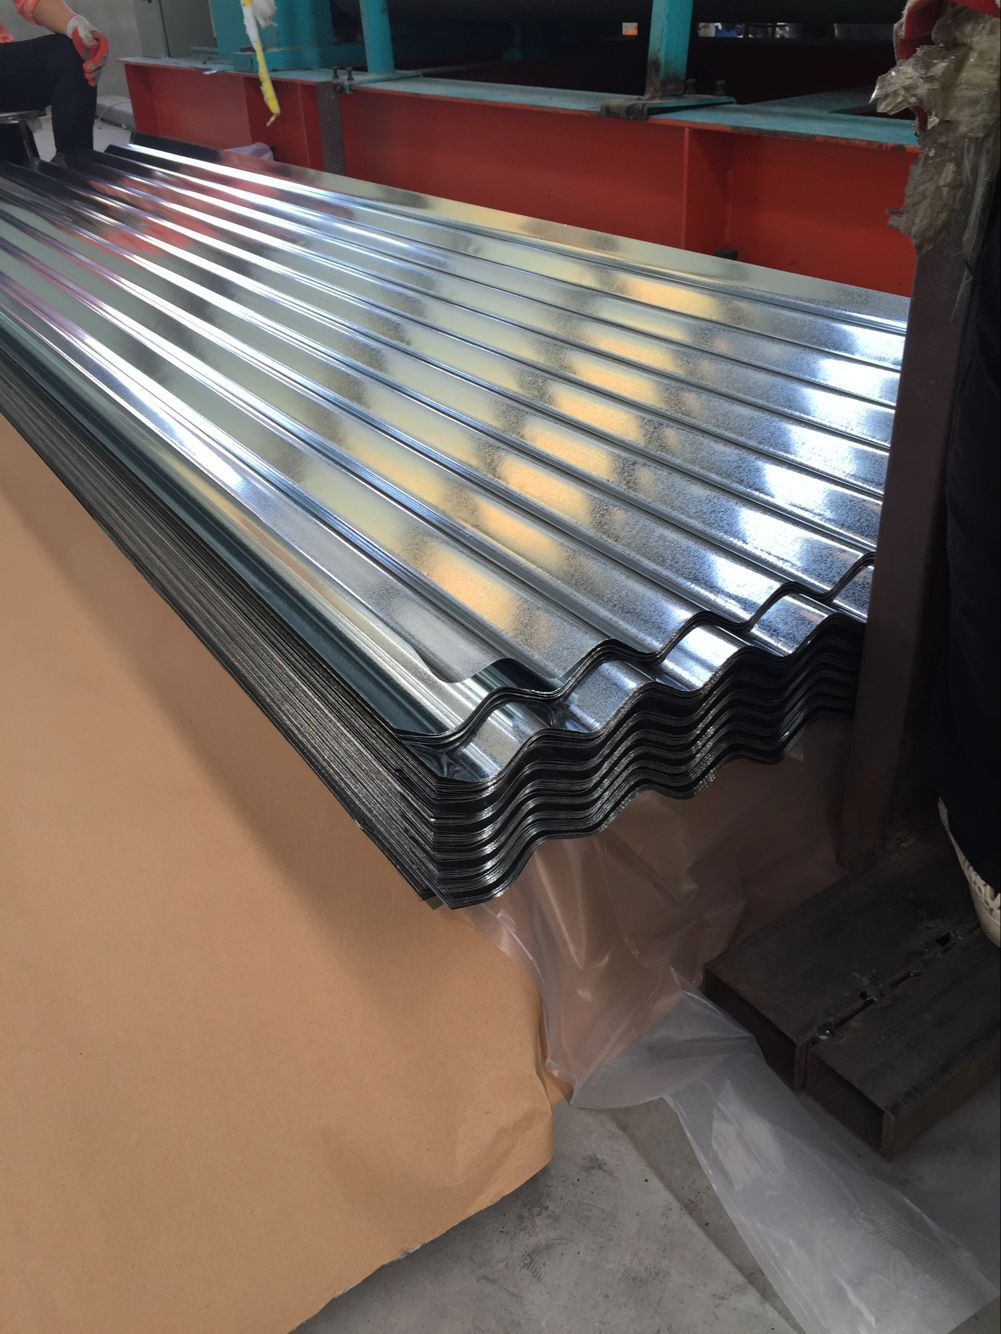 Galvanized Roofing Sheet Courrgated Board In 2020 Corrugated Roofing Galvanized Roofing Roofing Sheets